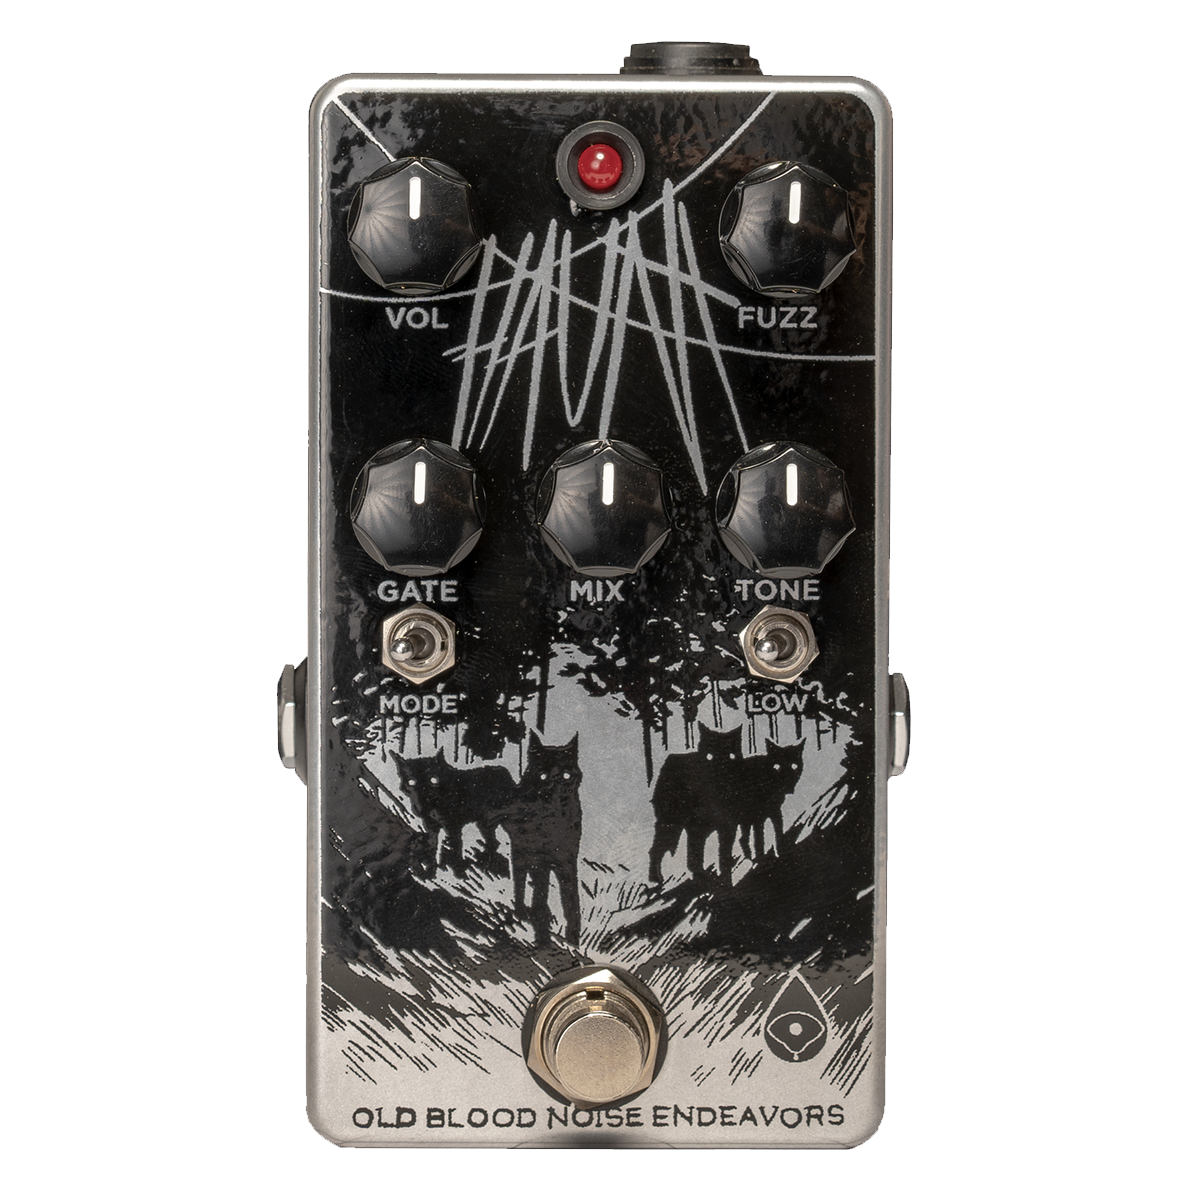 Old Blood Noise Endeavors - Haunt Fuzz V1